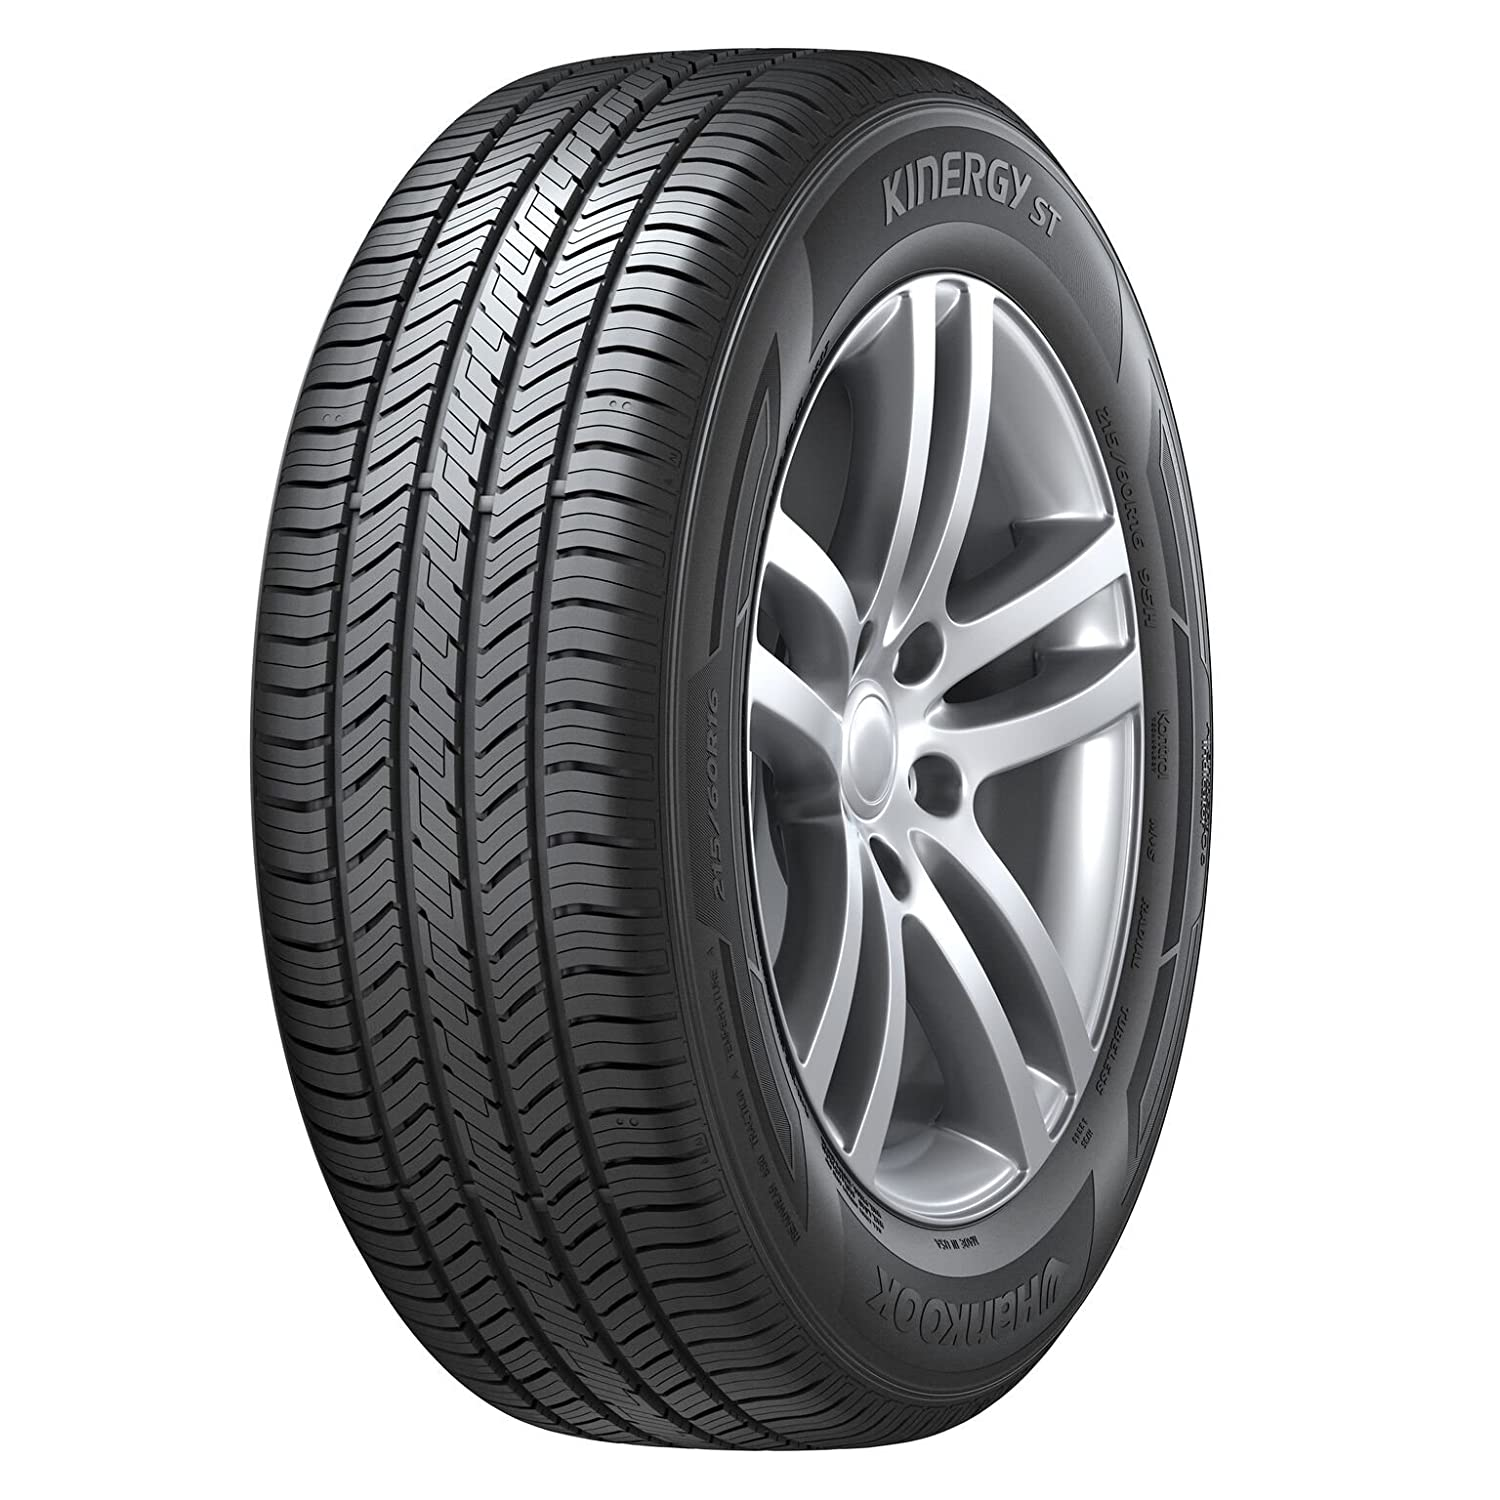 Hankook Kinergy ST H735 All-Season Radial Tire - 225/60R17 99T 1021497